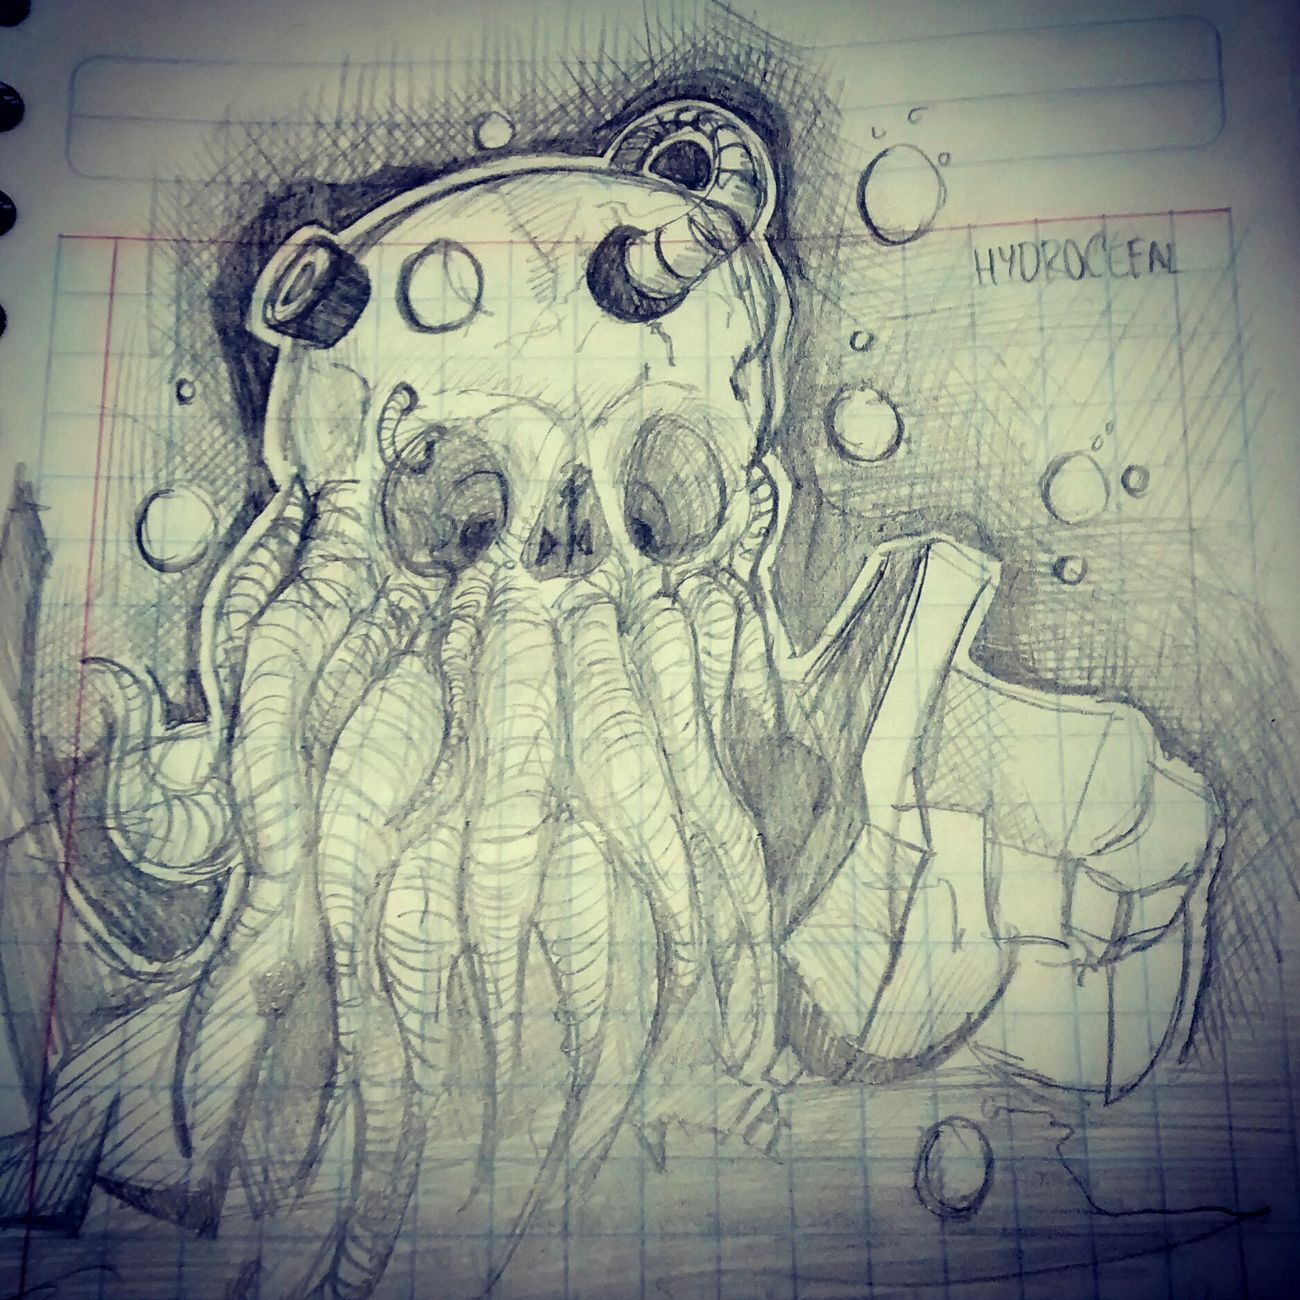 A fast draw Draw Sketch Cofee Break Cthulhu Art, Drawing, Creativity Wawricio